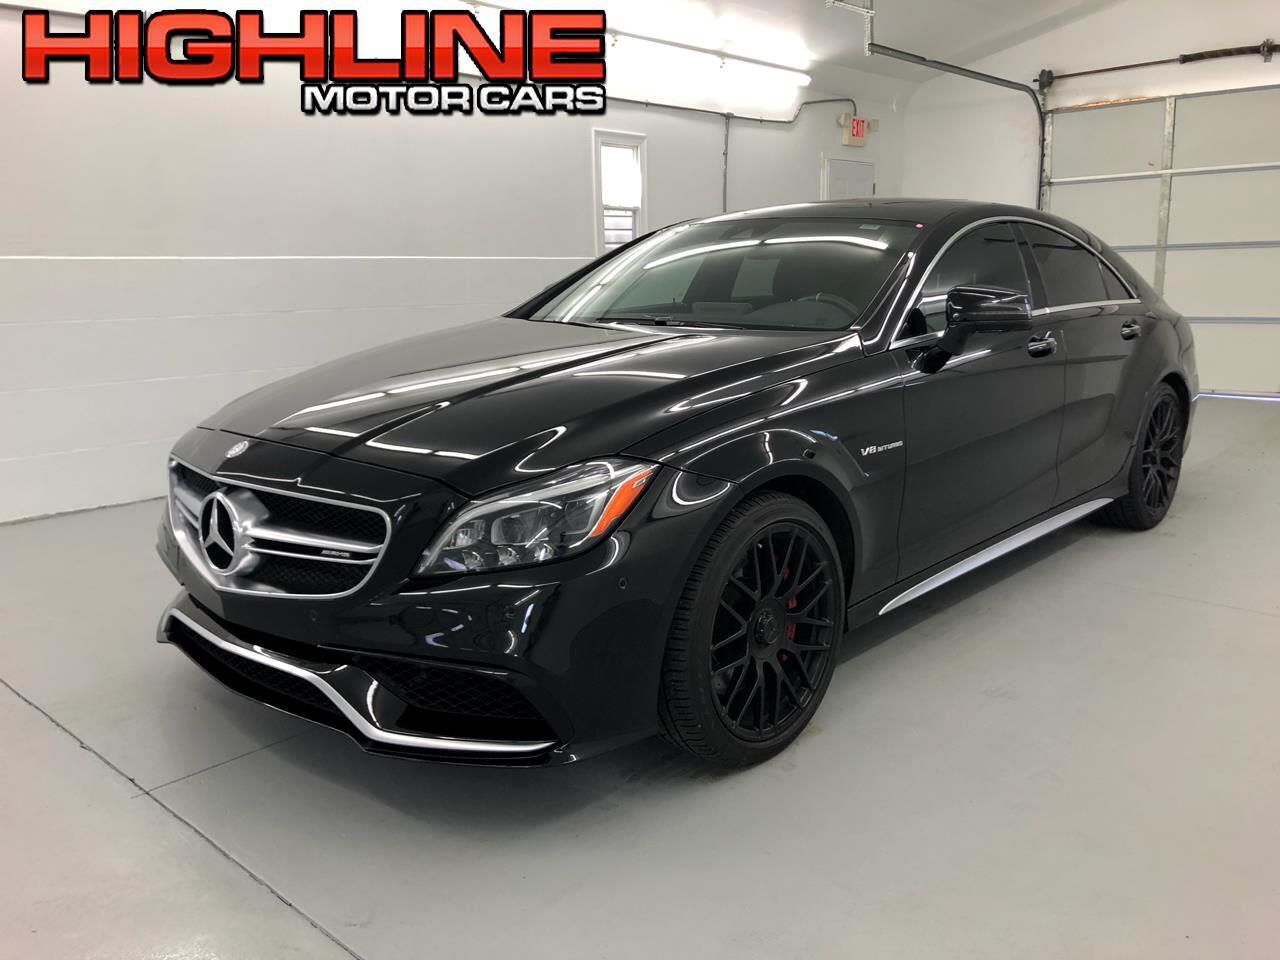 2016 Mercedes-Benz CLS 4dr Sdn AMG CLS 63 S-Model 4MATIC